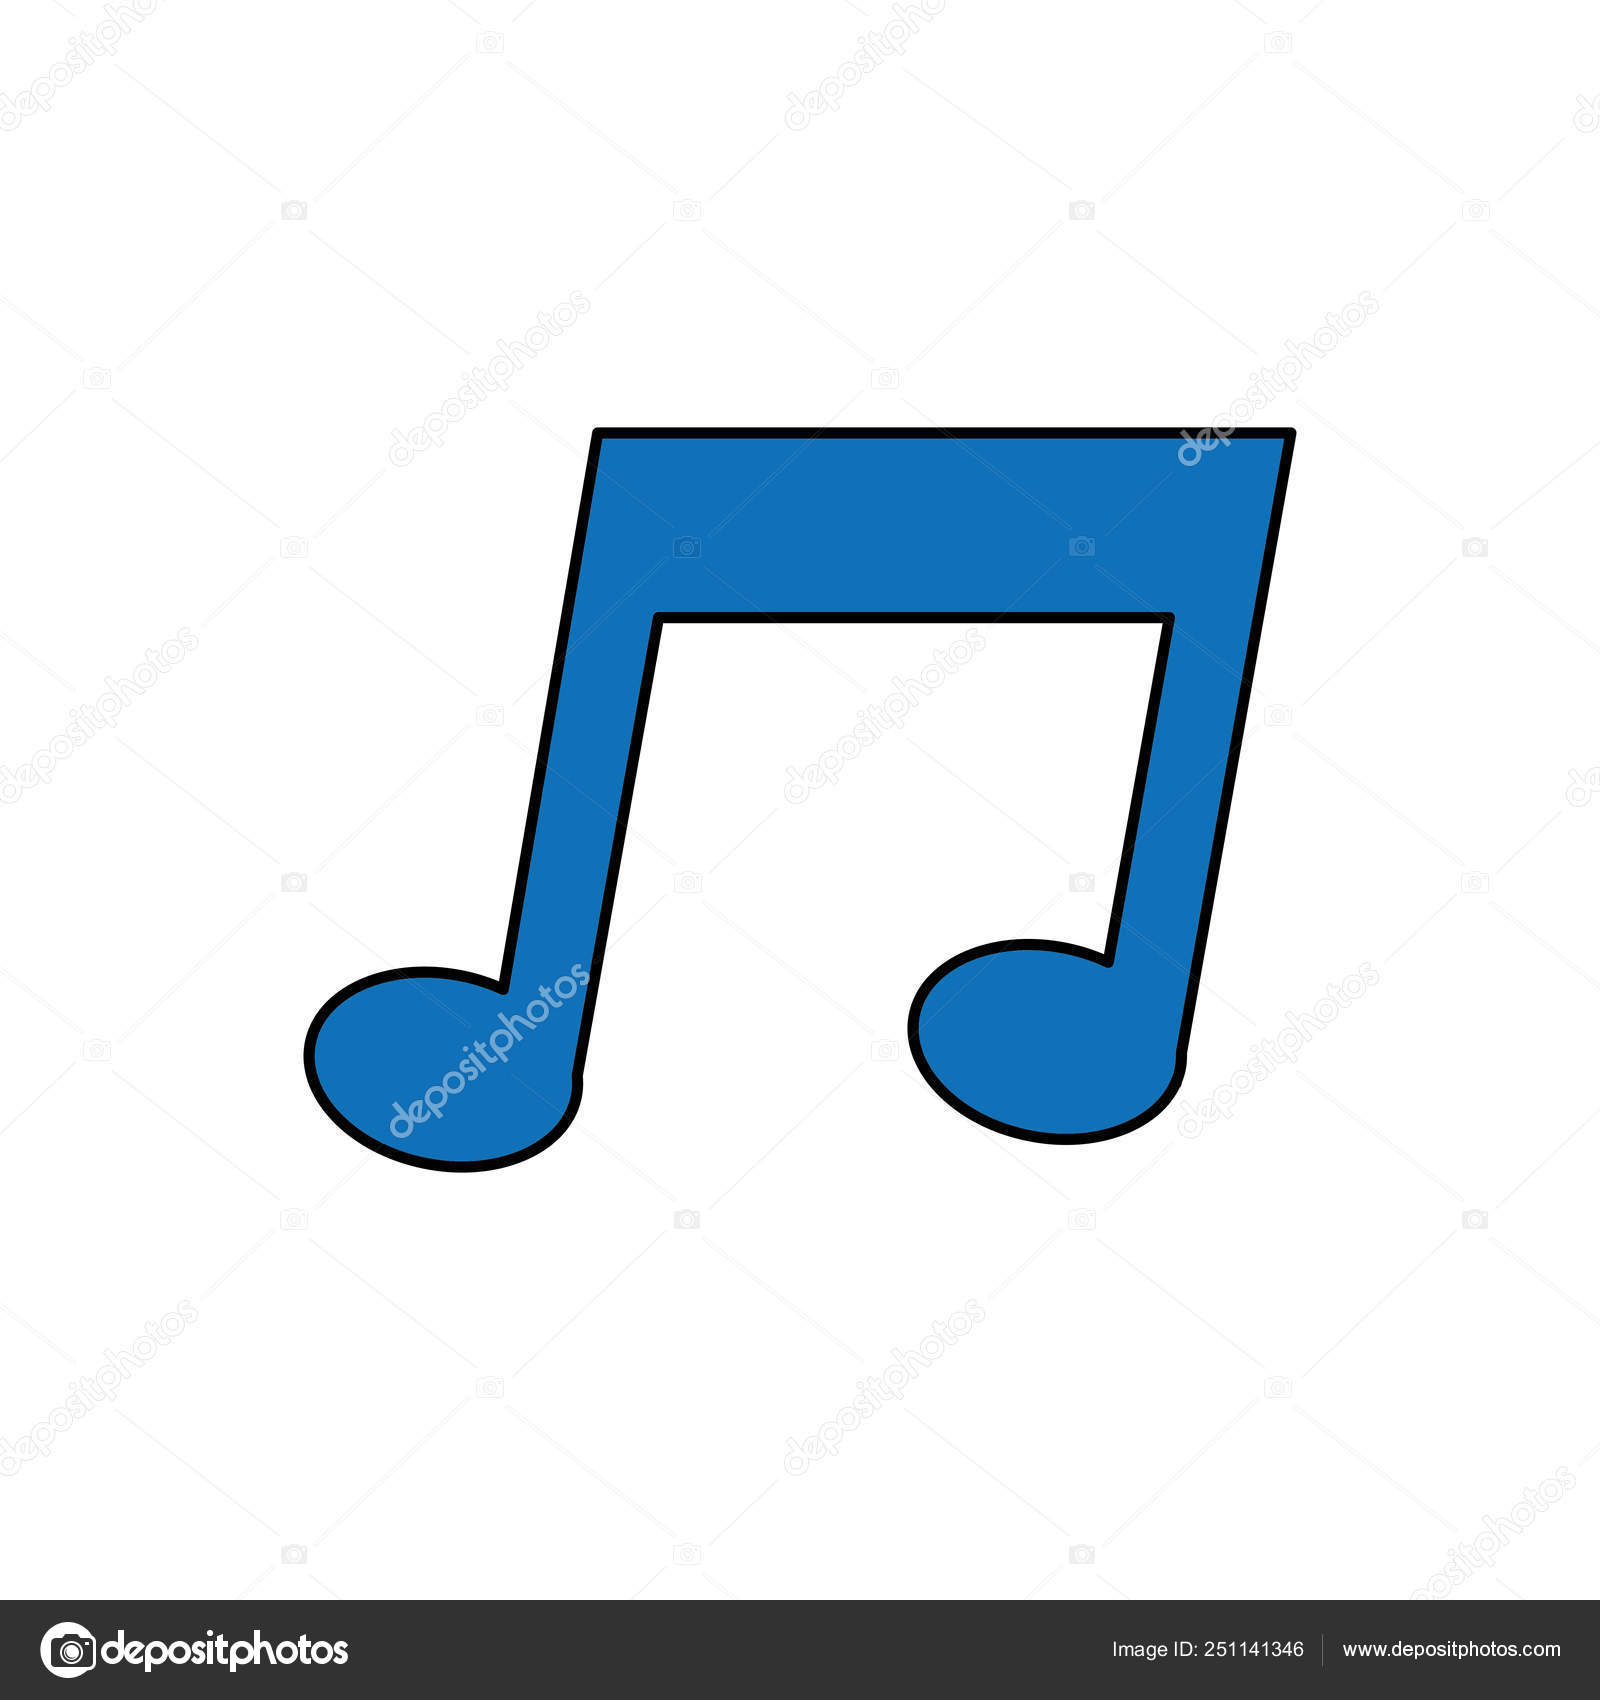 Music Note Sound Pentagram Musical Theme Isolated Design